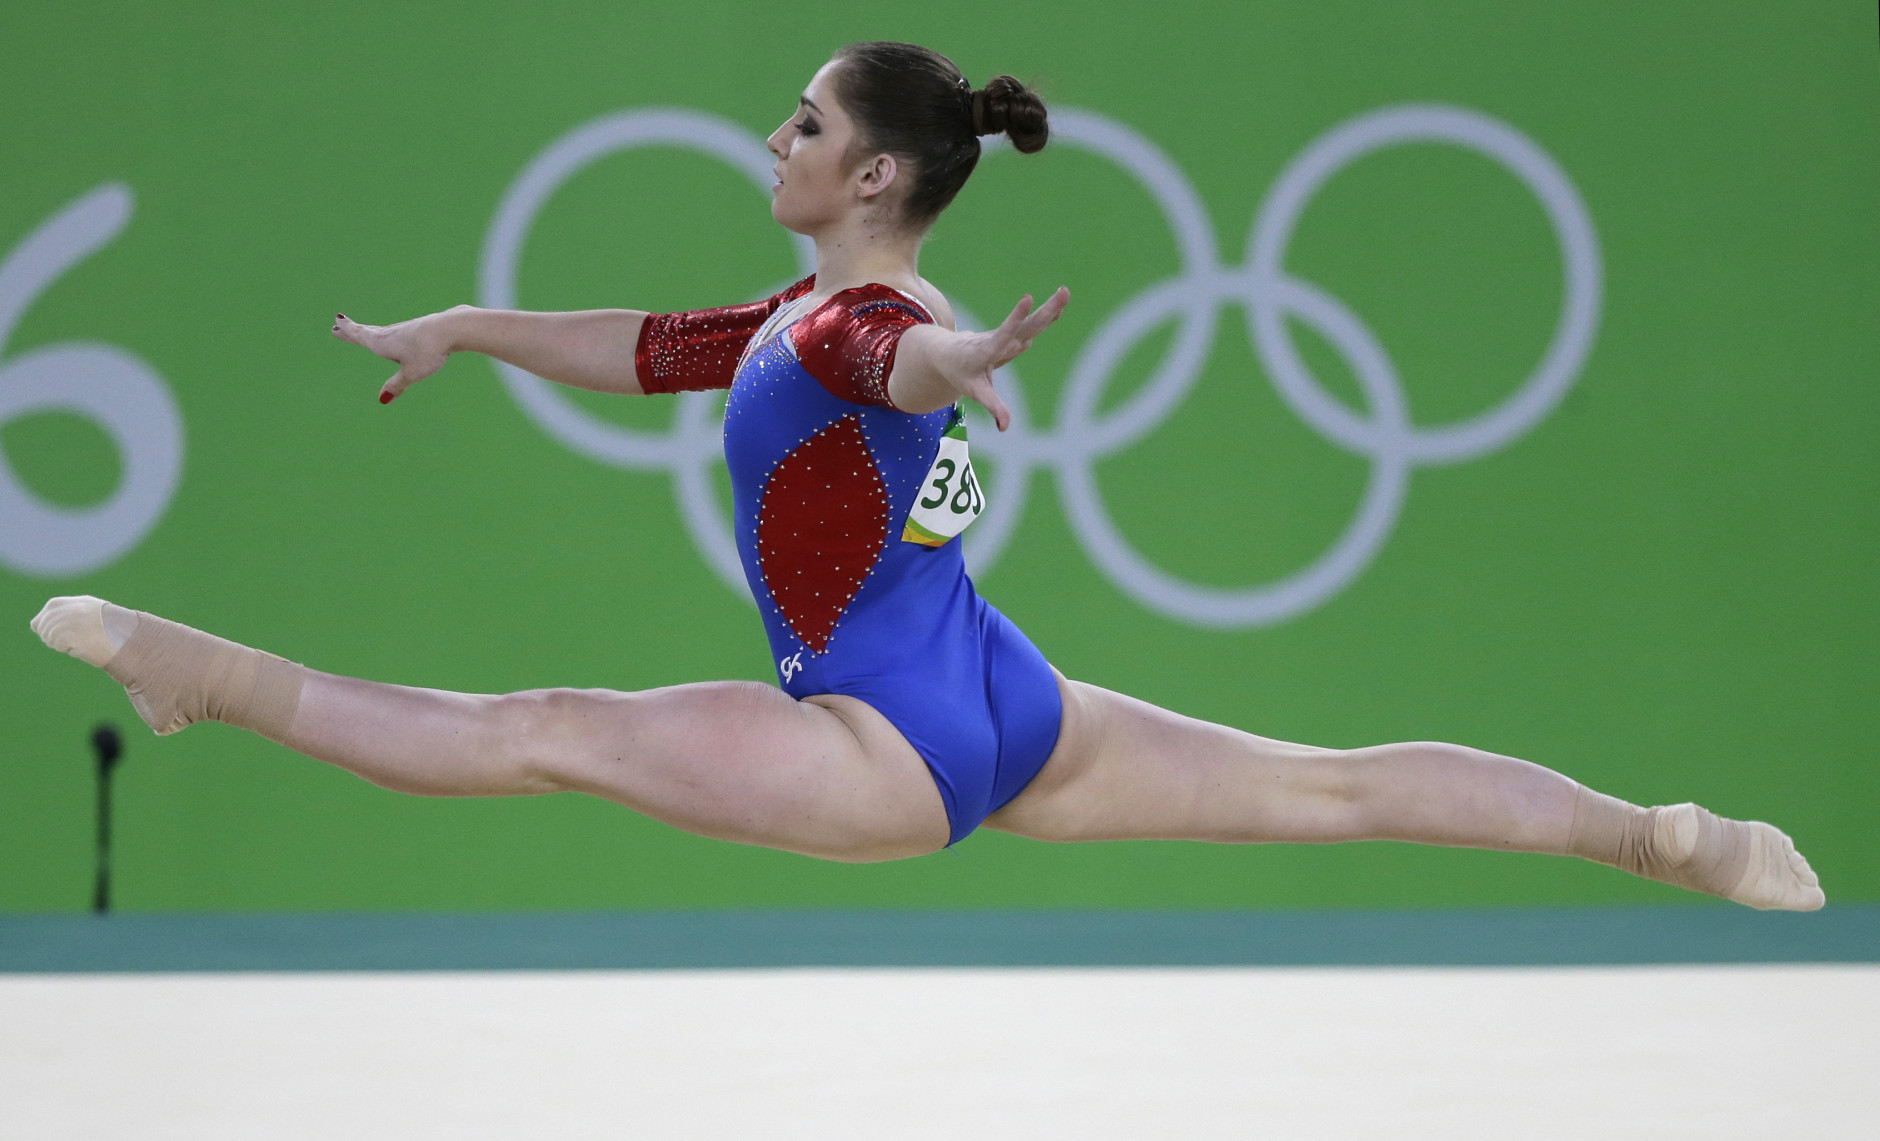 Russia's Aliya Mustafina performs on the floor during the artistic gymnastics women's qualification at the 2016 Summer Olympics in Rio de Janeiro, Brazil, Sunday, Aug. 7, 2016. (AP Photo/Rebecca Blackwell)